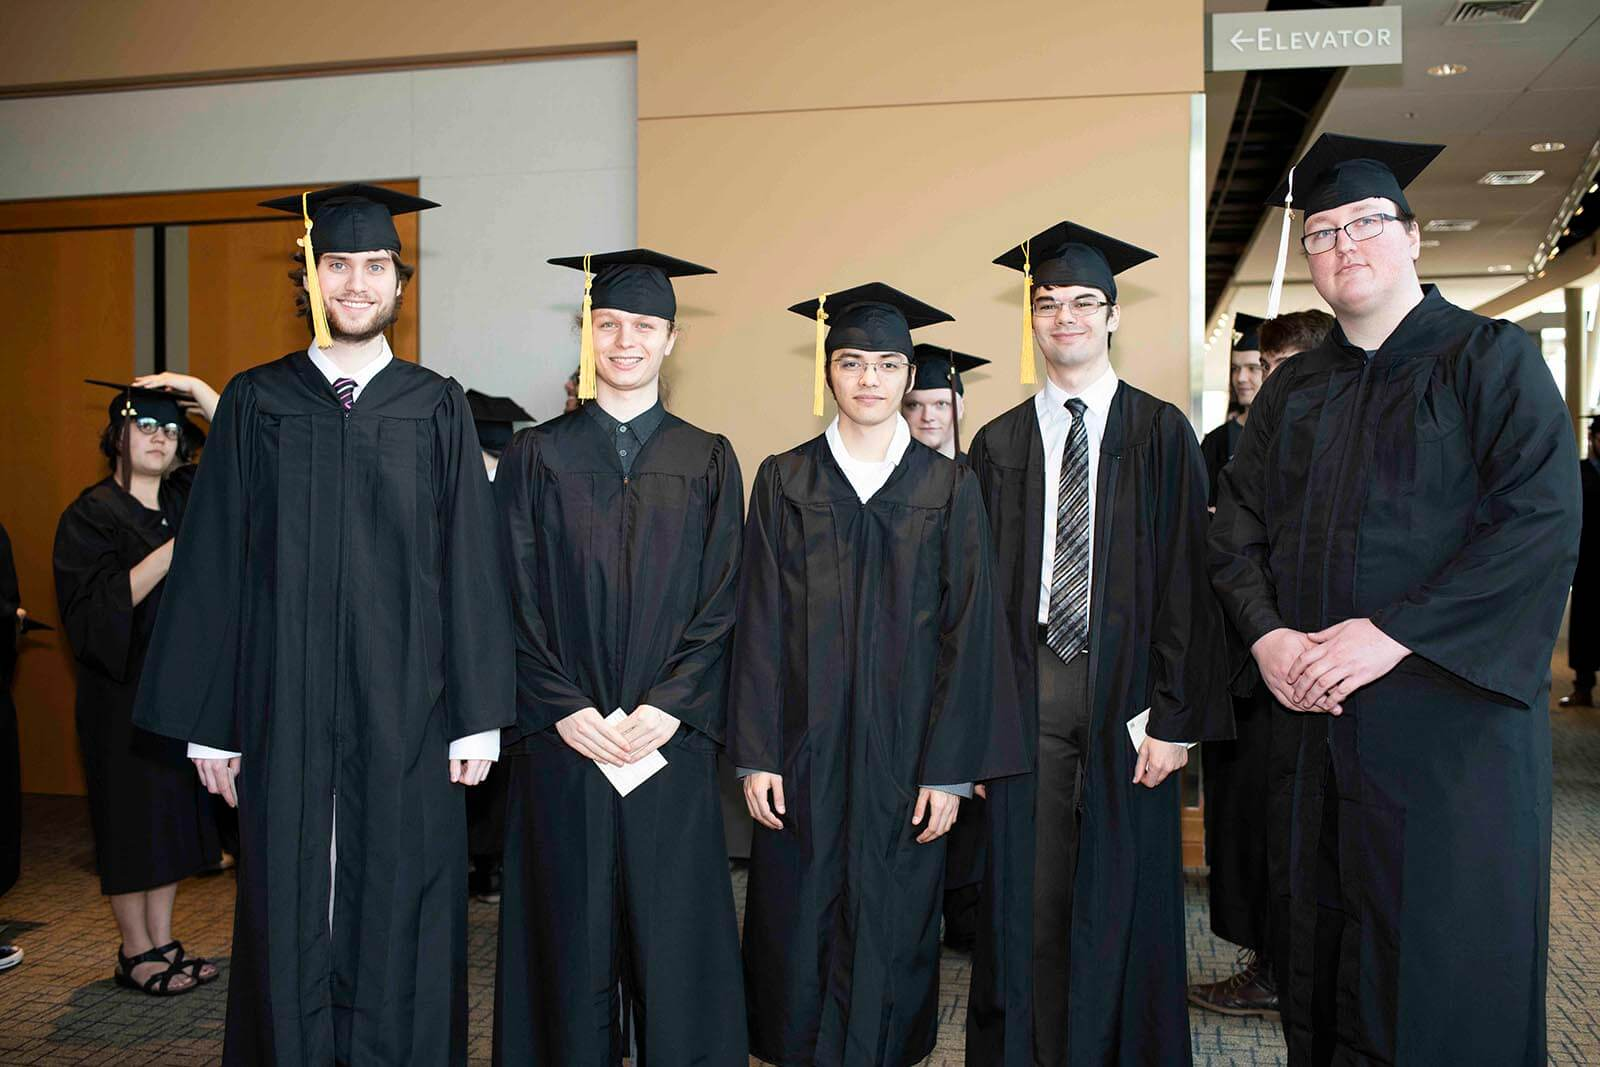 A group of graduating students pose in black robes and mortarboards in a hallway.